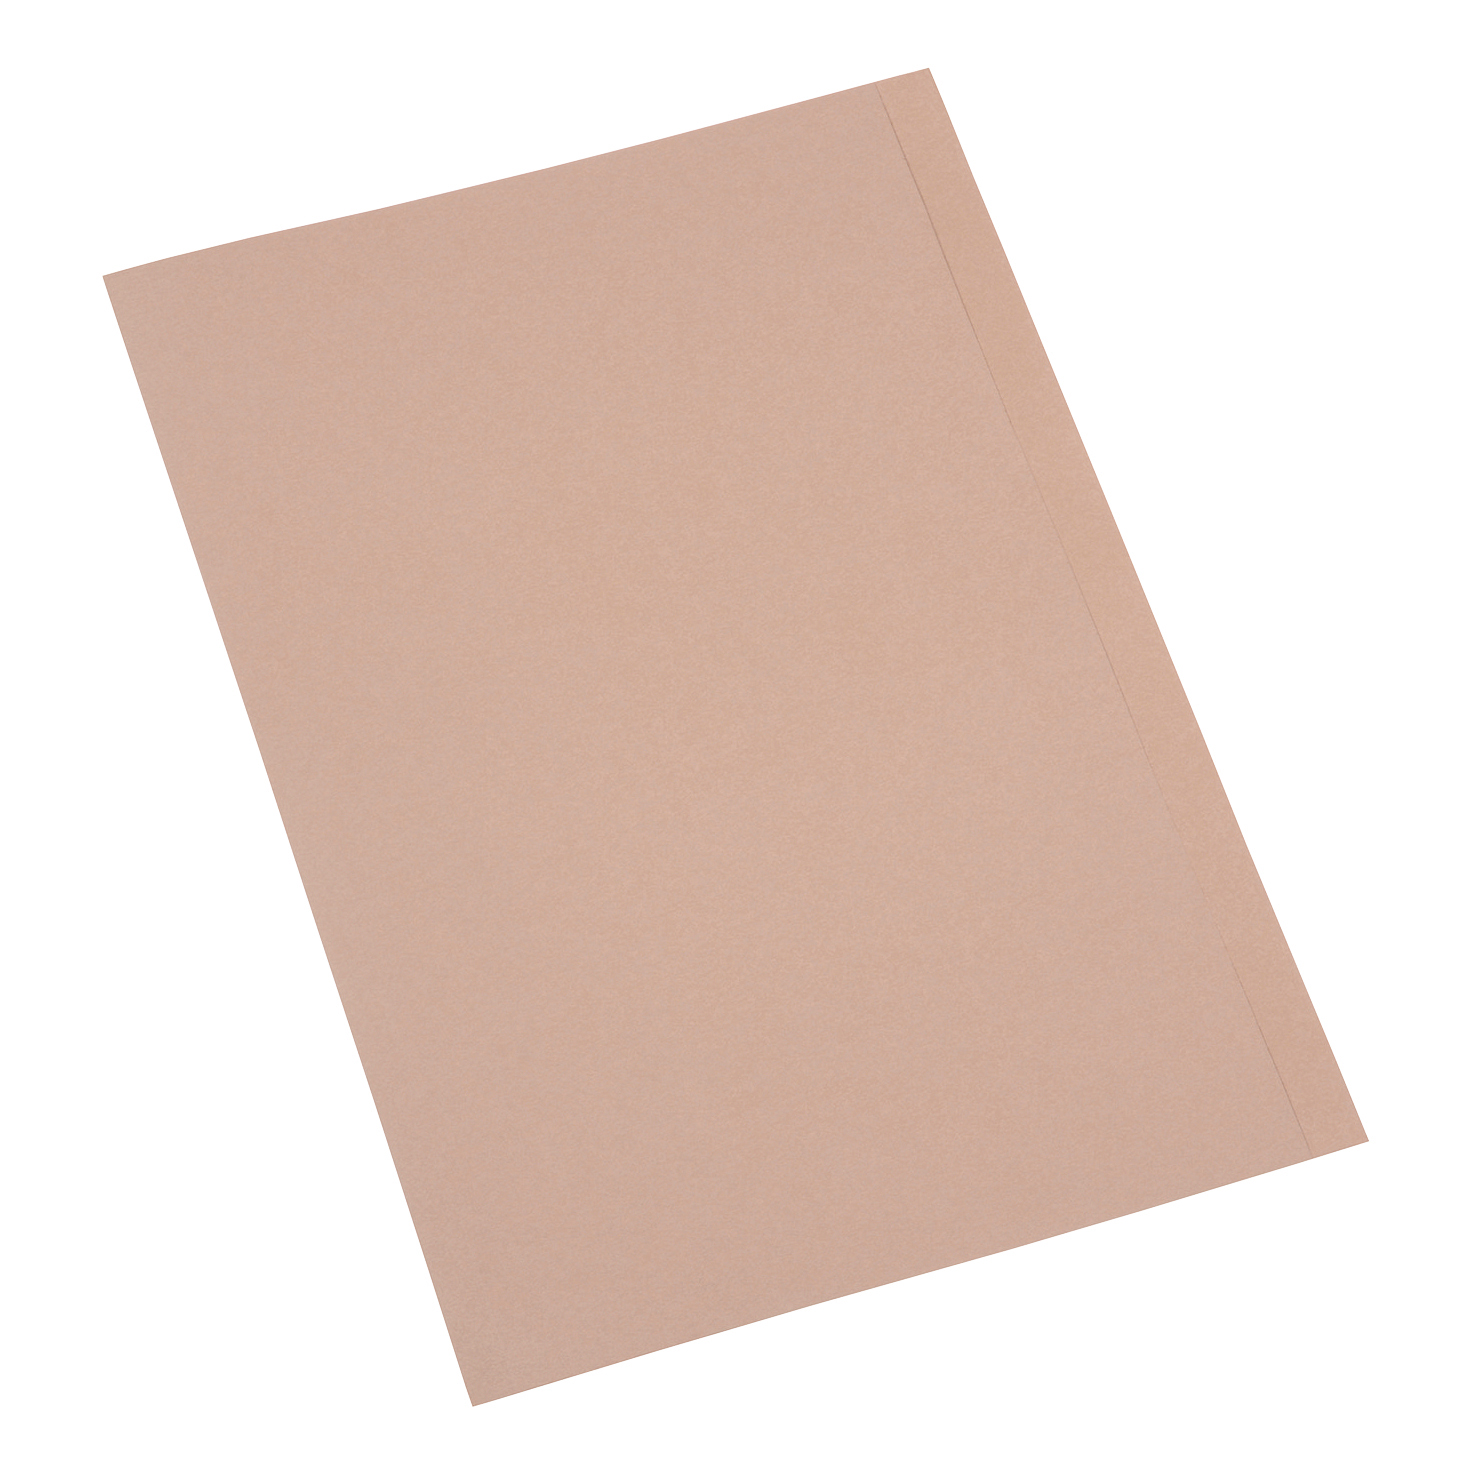 Image for 5 Star Eco Square Cut Folders 170gsm Foolscap Recycled Kraft [Pack 100]